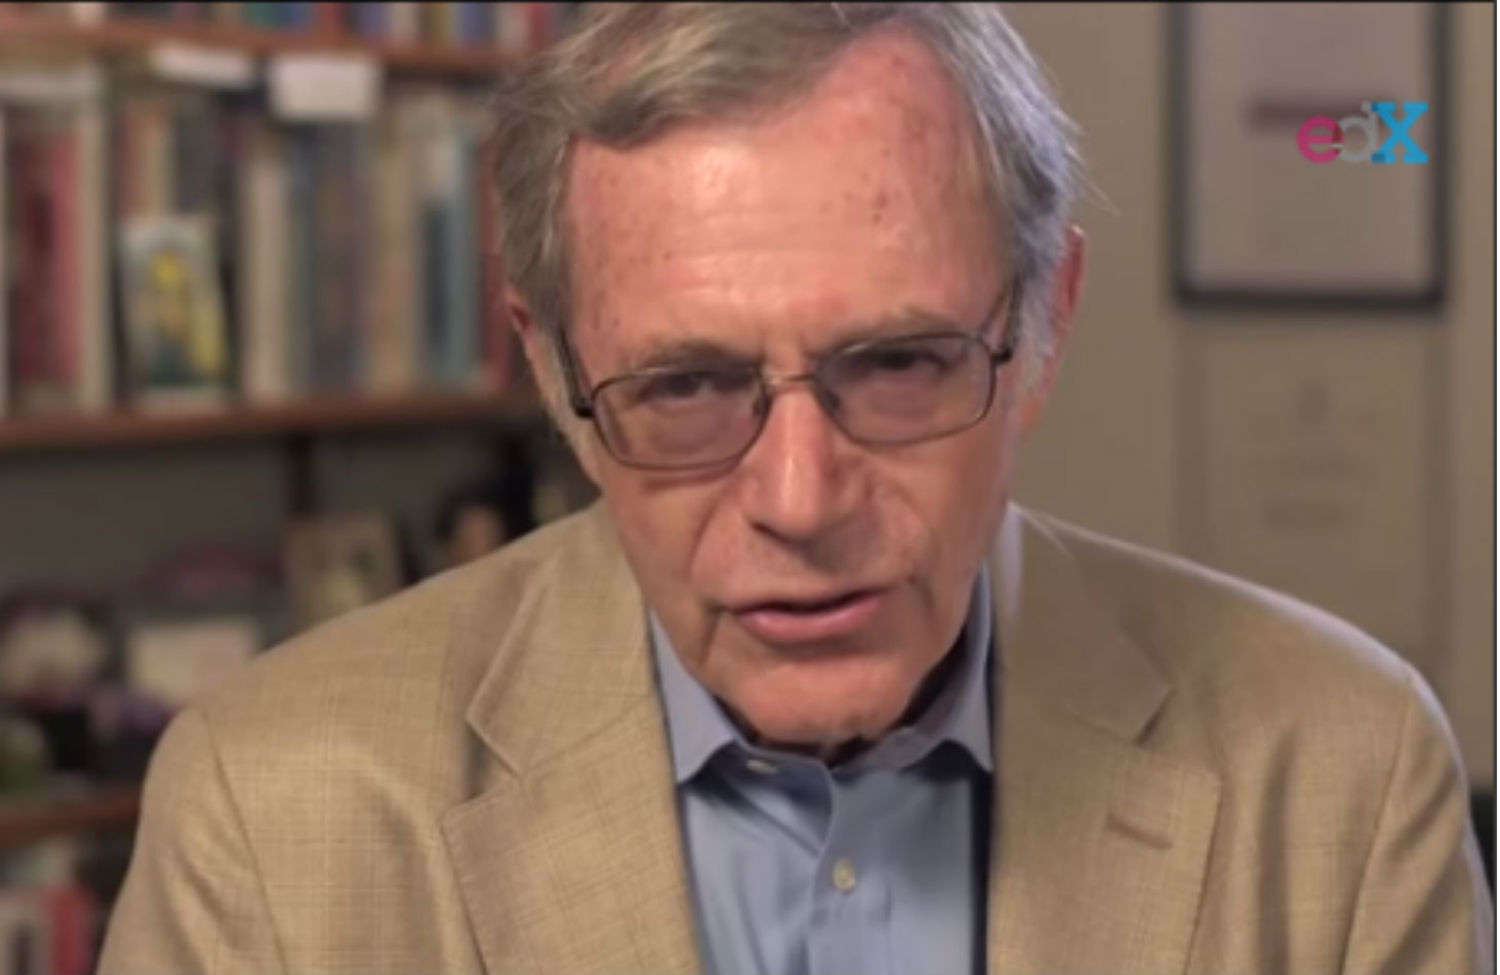 Eric-Foner-EdX-Channel-YouTube